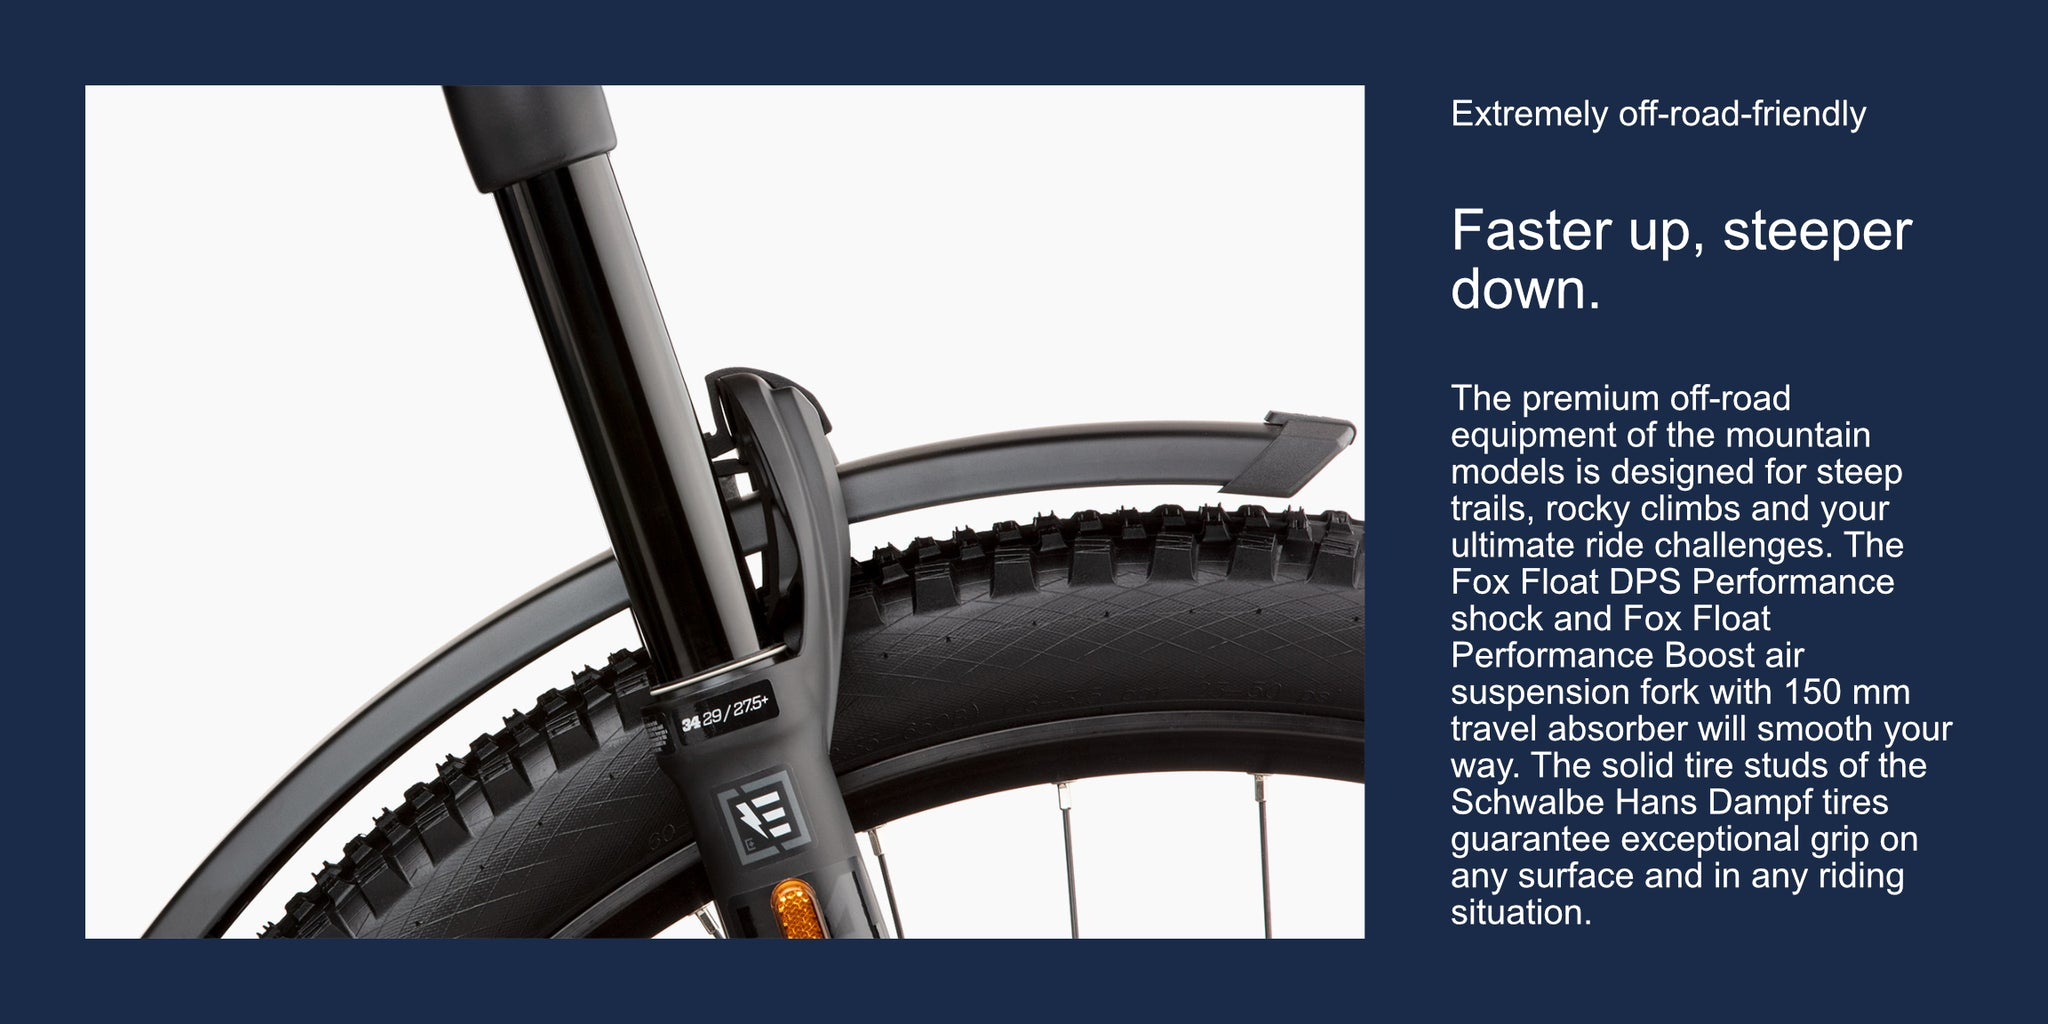 Extremely off-road-friendlyFaster up, steeper down.The premium off-road equipment of the mountain models is designed for steep trails, rocky climbs and your ultimate ride challenges. The Fox Float DPS Performance shock and Fox Float Performance Boost air suspension fork with 150 mm travel absorber will smooth your way. The solid tire studs of the Schwalbe Hans Dampf tires guarantee exceptional grip on any surface and in any riding situation.